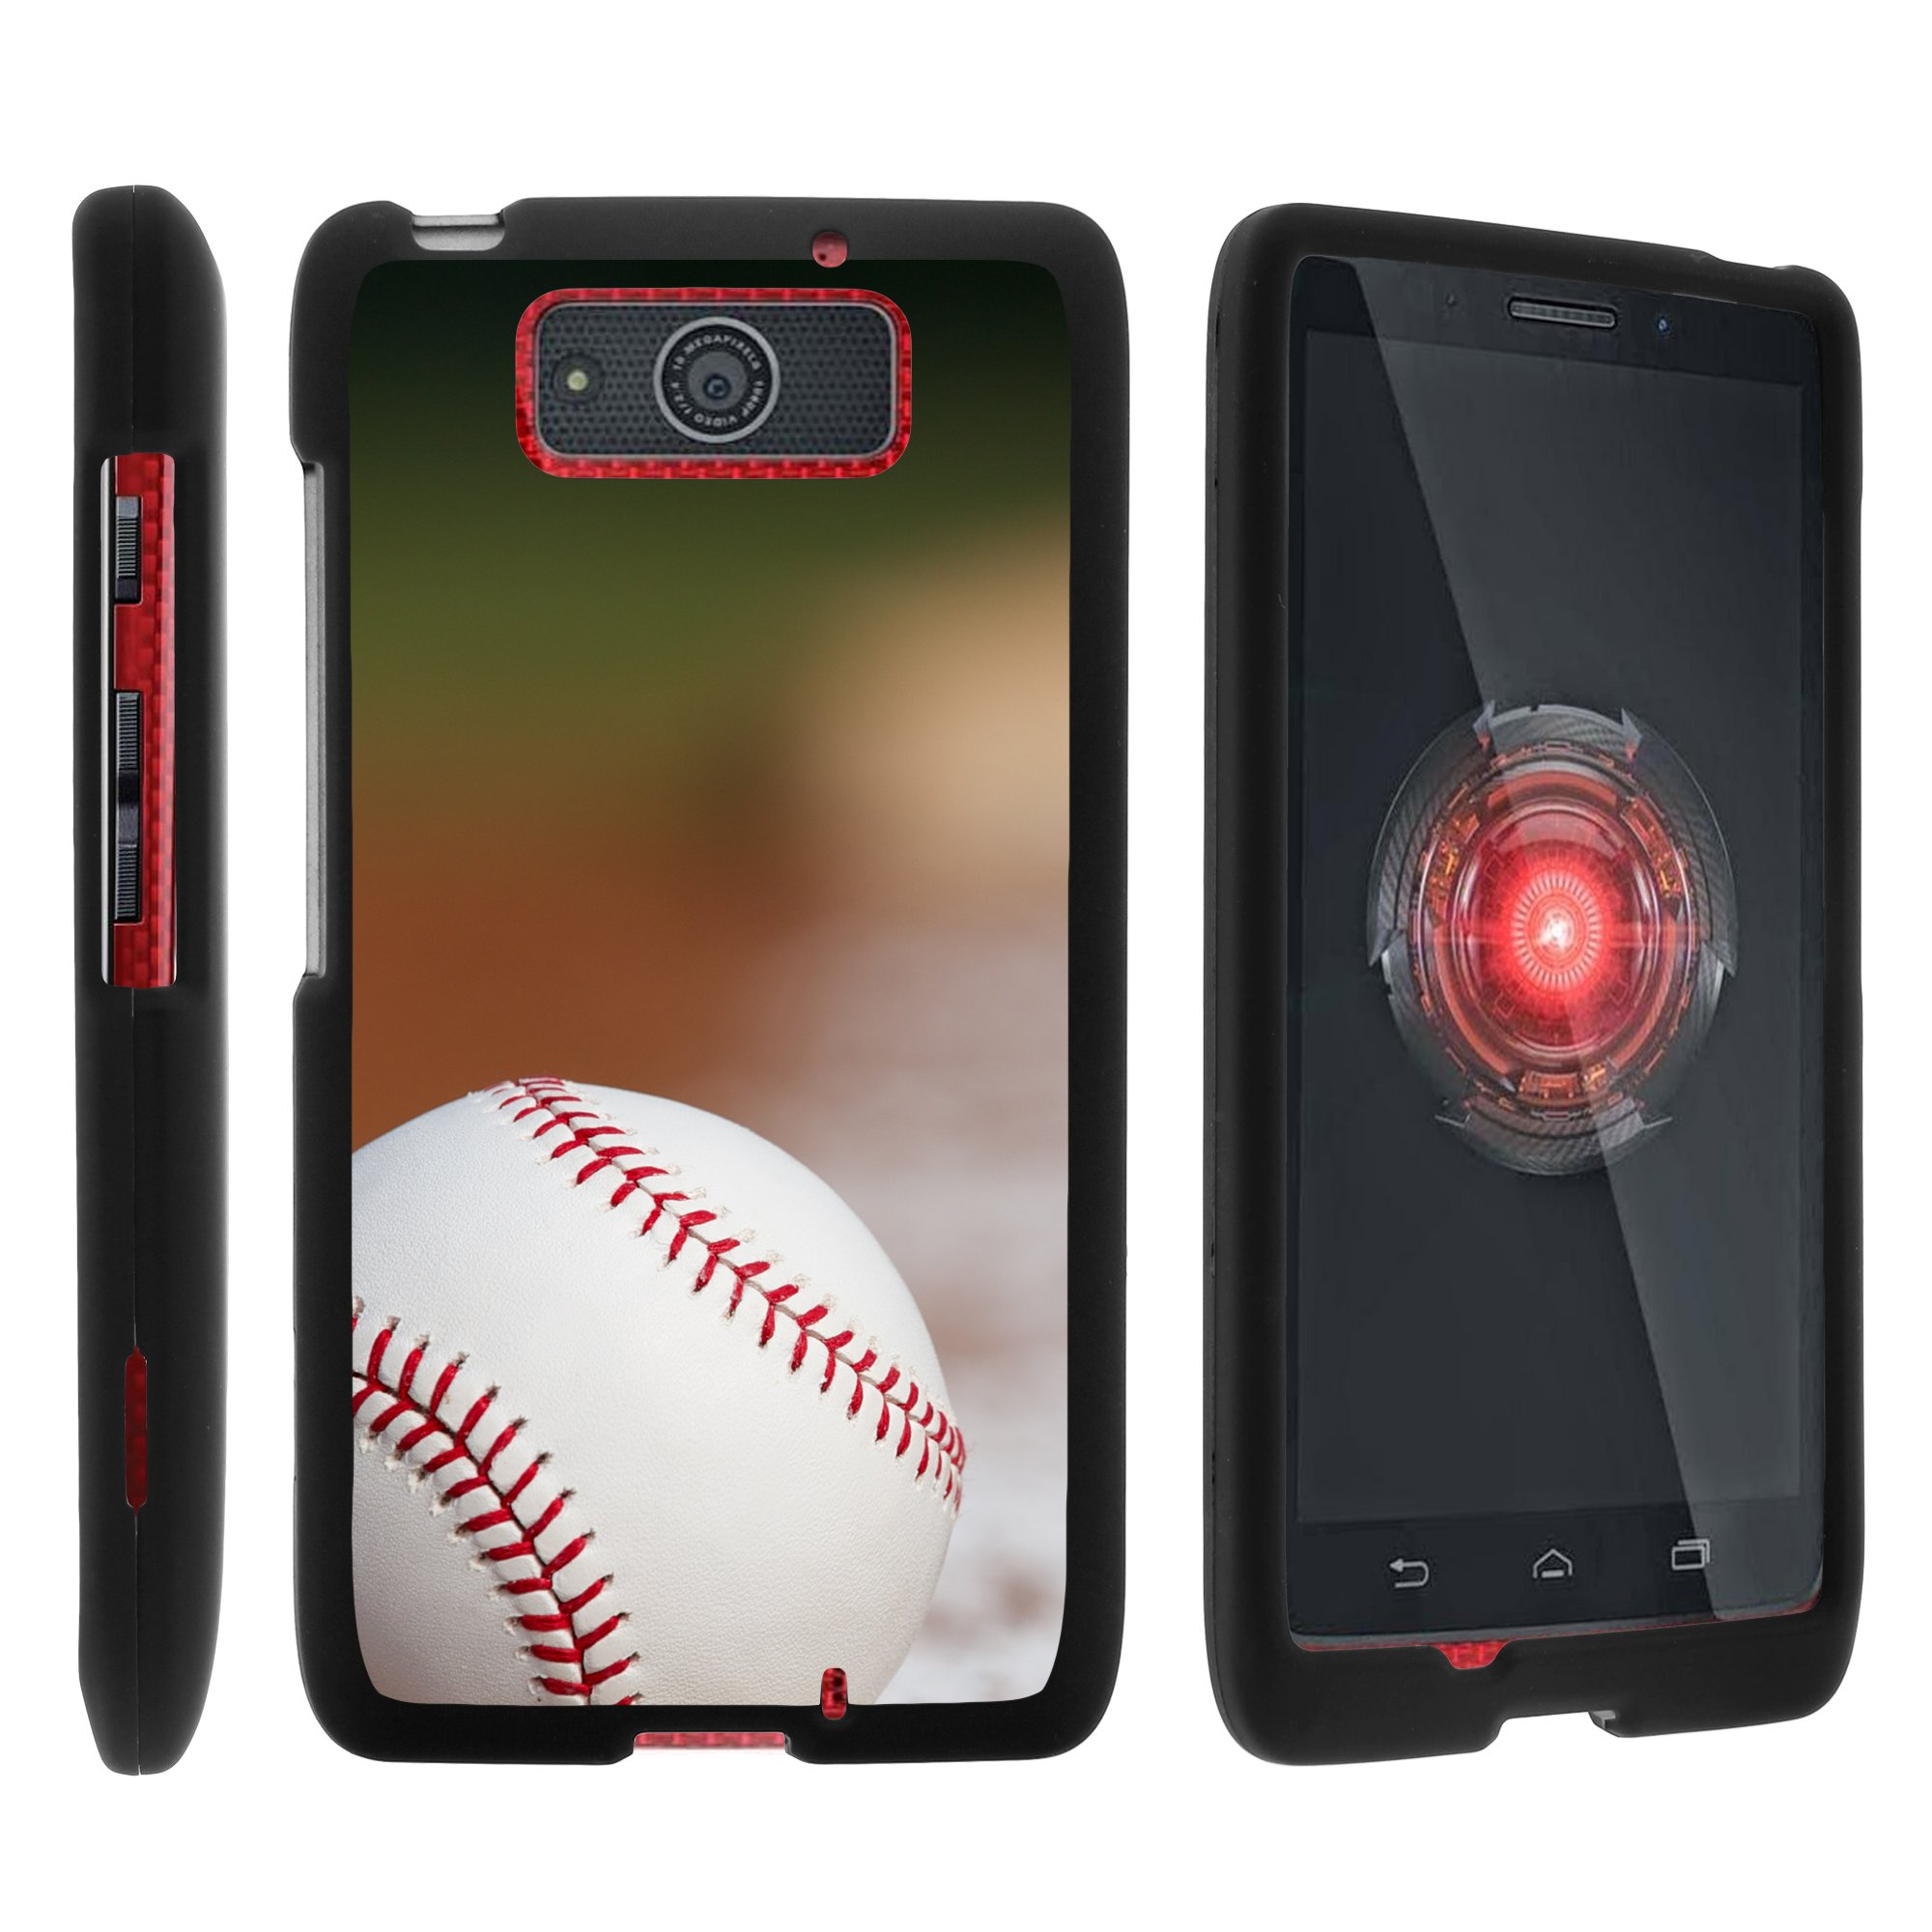 Motorola Droid Ultra XT1080 | Droid Maxx XT1080-M, [SNAP SHELL][Matte Black] Snap On Hard Plastic Protector with Non Slip Coating with Unique Designs - Baseball Blur